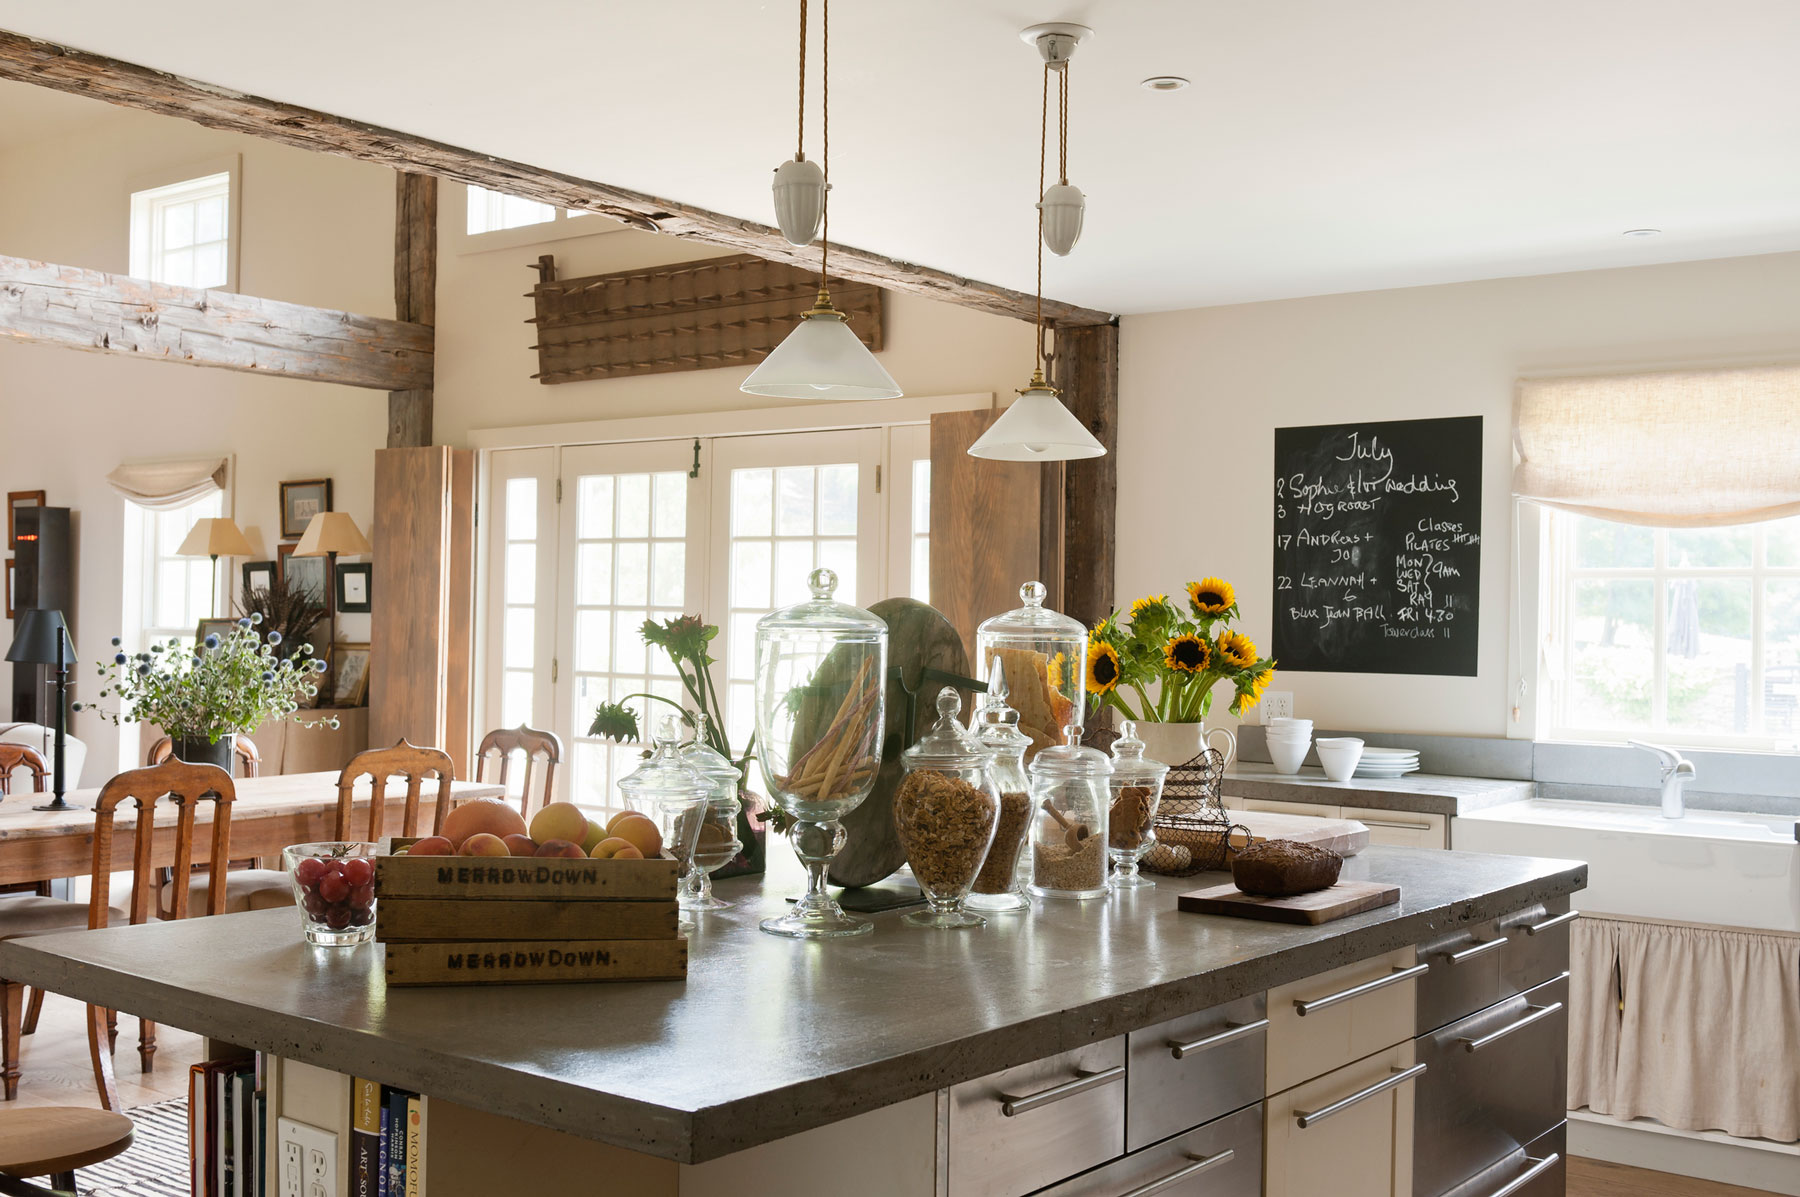 Kitchen Decorating Ideas Photos: The Countertop Look To Try If You're Totally Over Granite